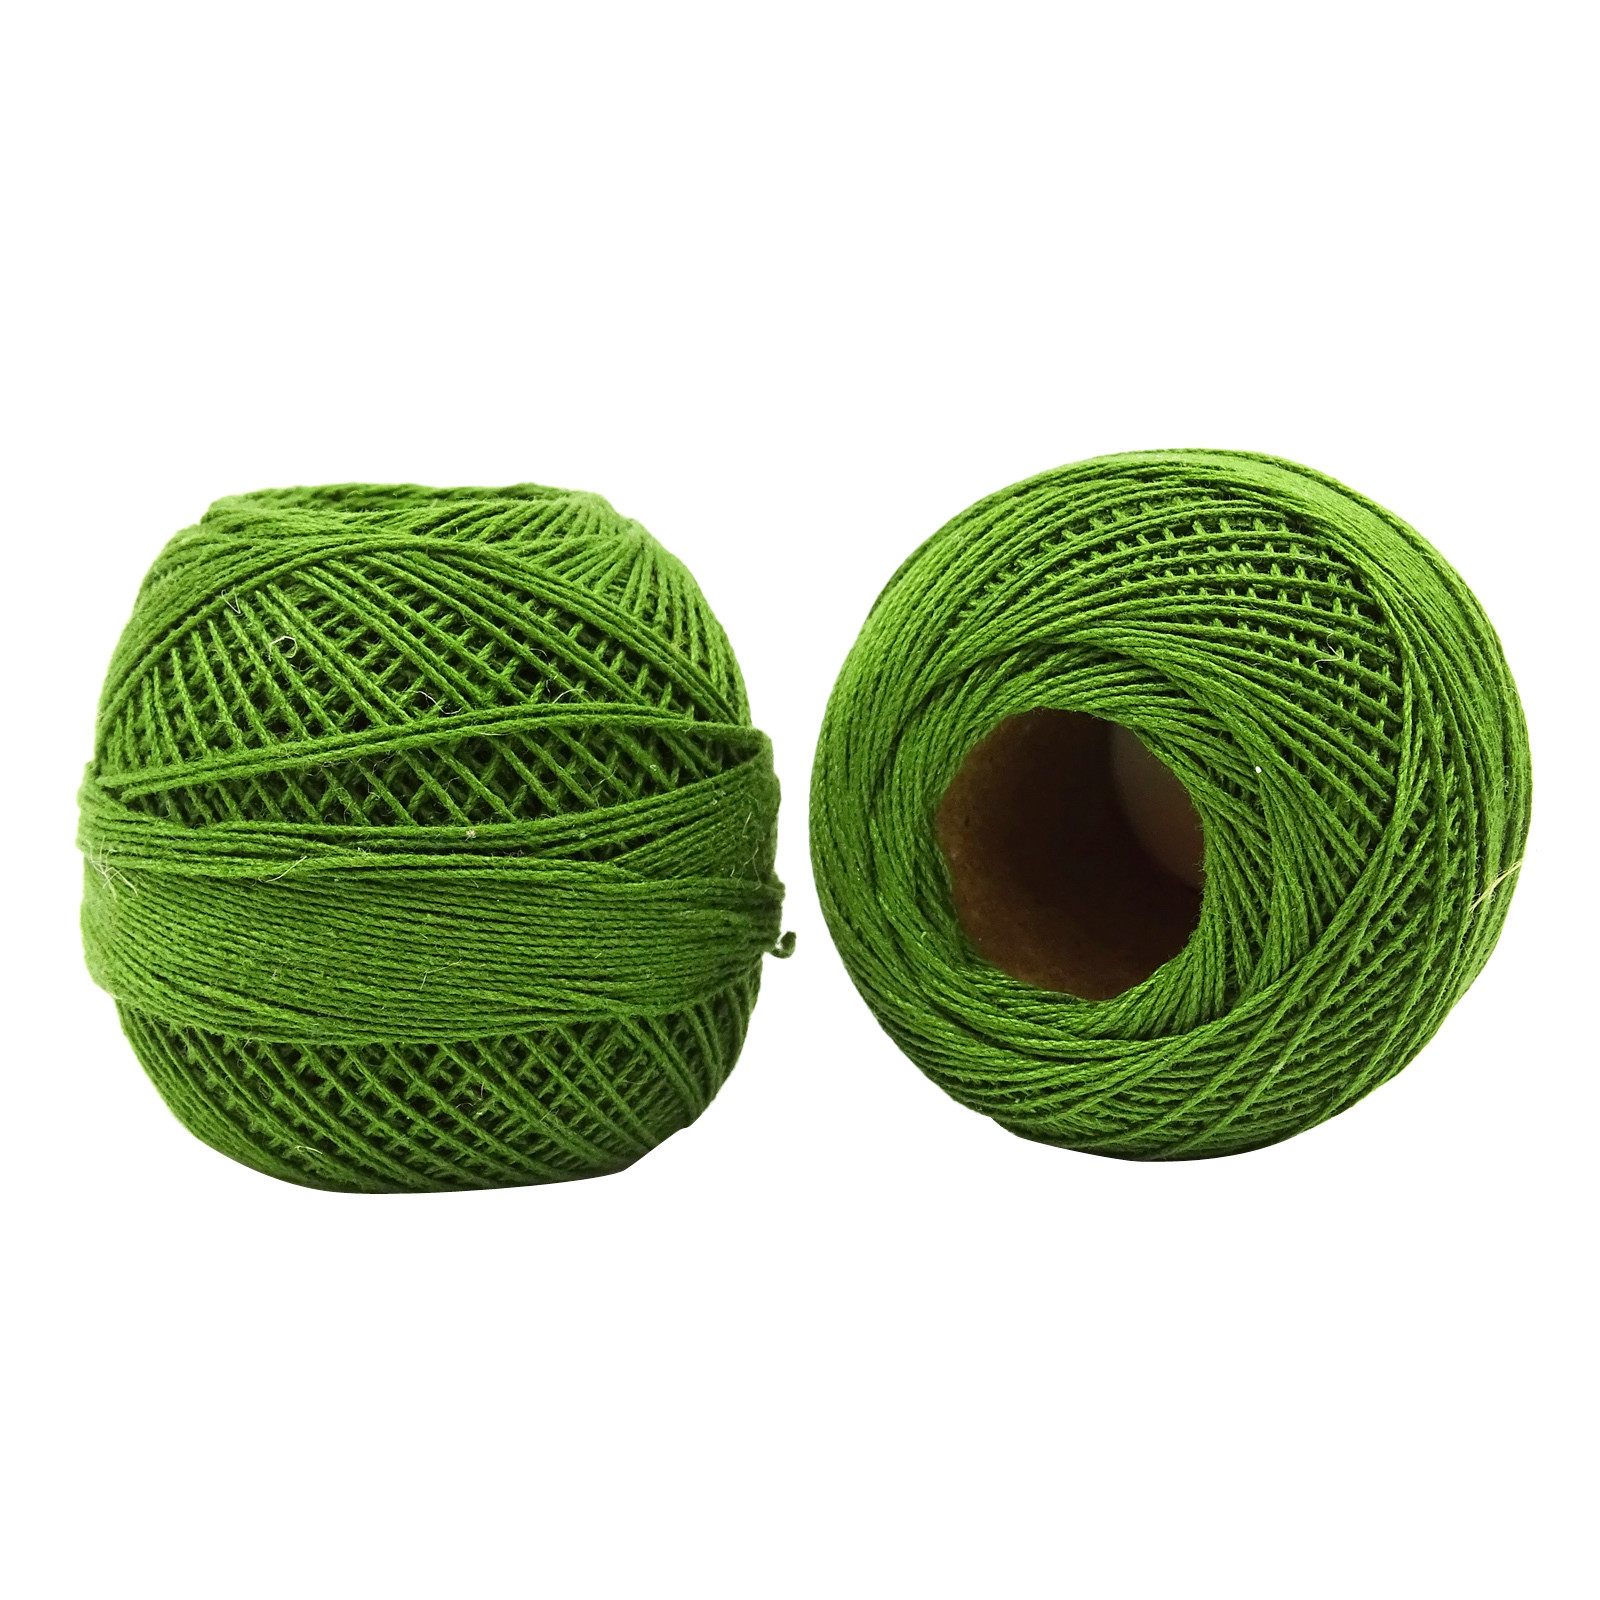 New Anchor Crochet Cotton Knitting Tatting Ball Embroidery Knitting Thread Of Amazing 48 Models Knitting Thread